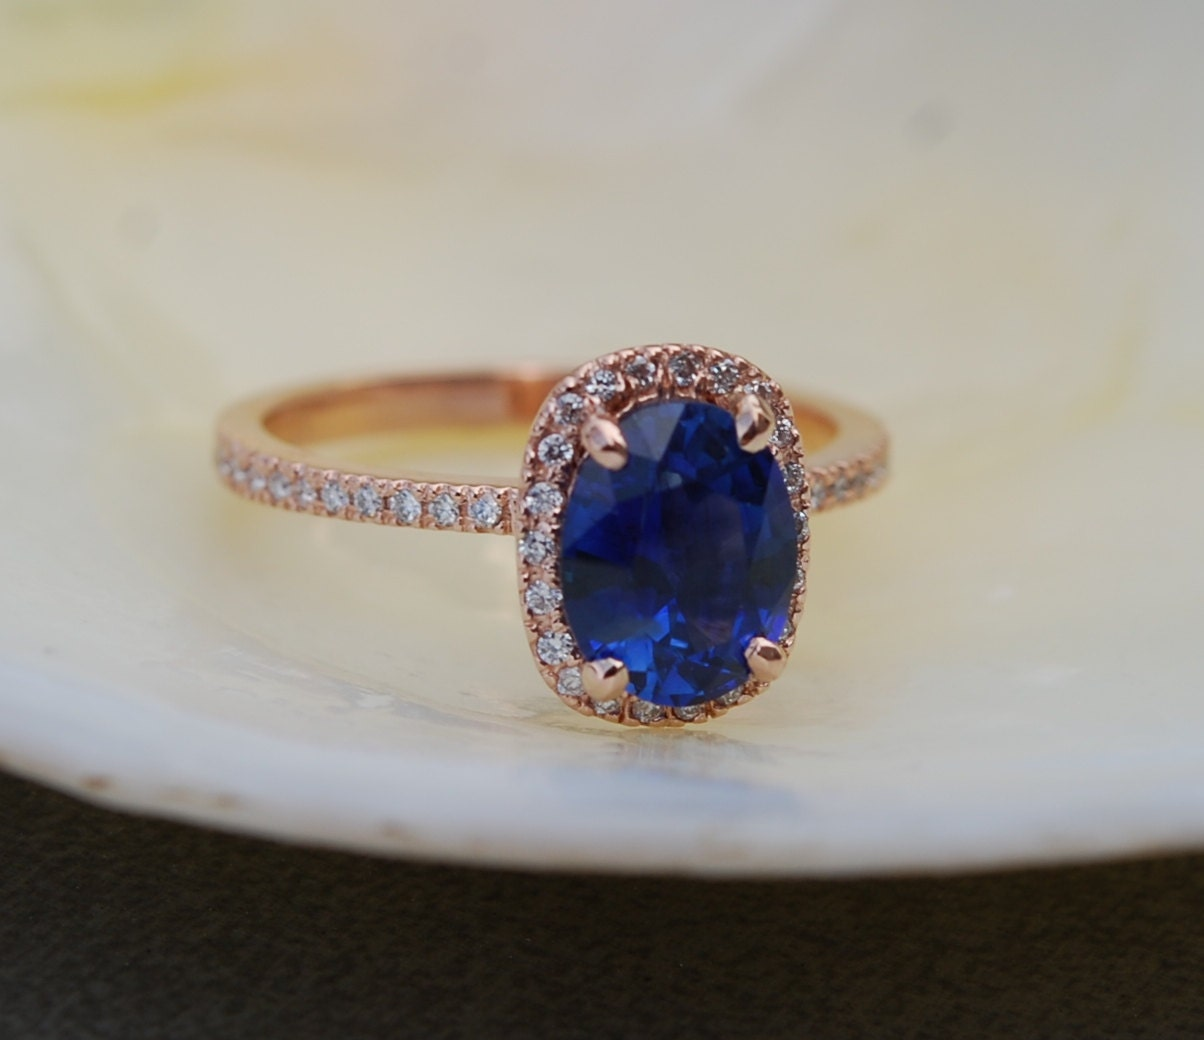 Rose gold sapphire ring. 2.57ct Royal blue sapphire diamond ring 18k rose  gold oval engagement ring. Engagement rings by Eidelprecious.